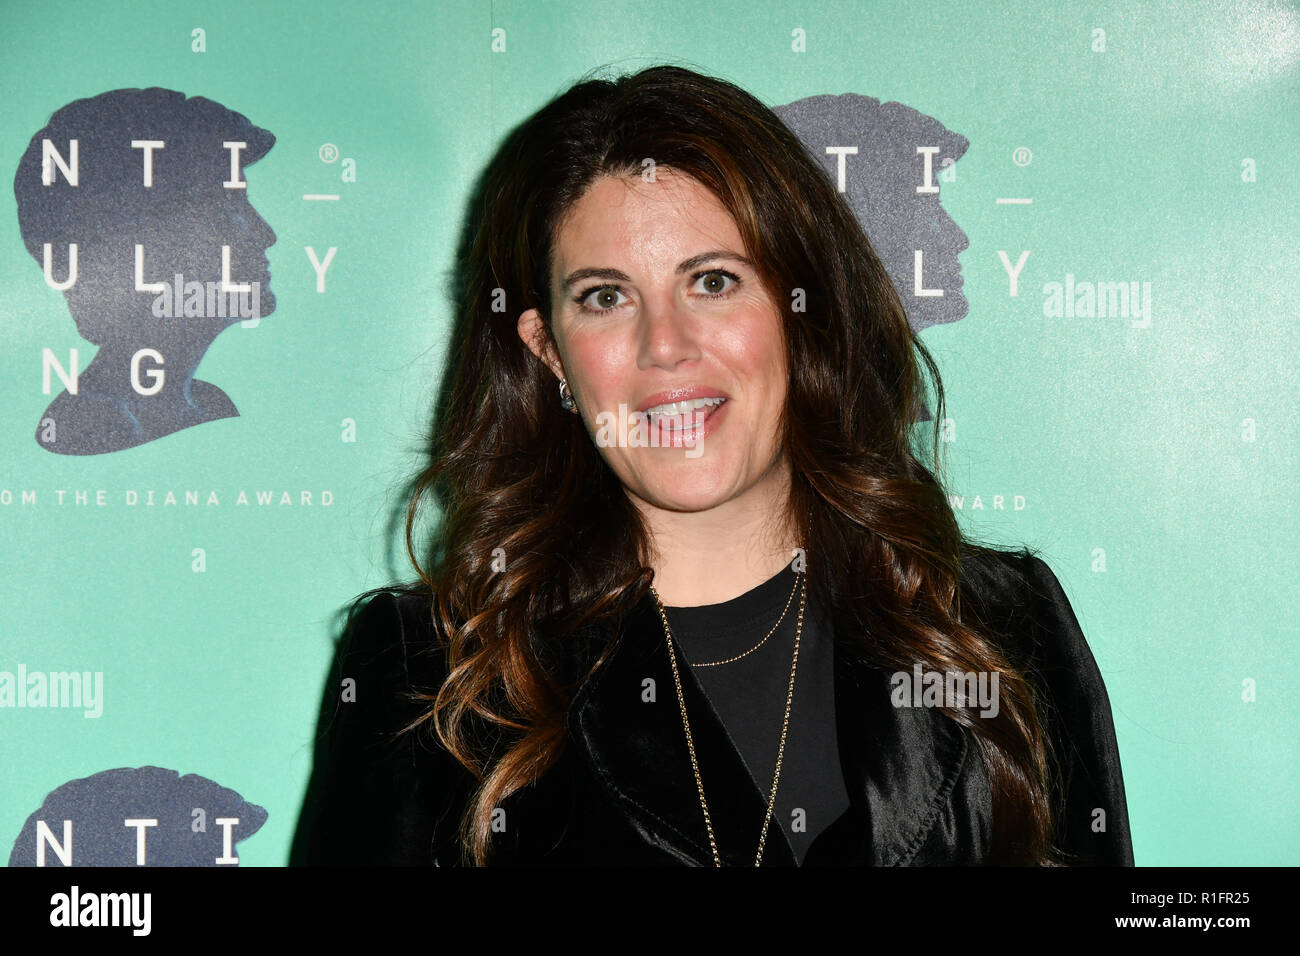 London, UK. 12th November, 2018. Monica Lewinsky attend The Diana Award anti-bullying week at Alexandra Palace on 12 November 2018, London, UK. Credit: Picture Capital/Alamy Live News Stock Photo